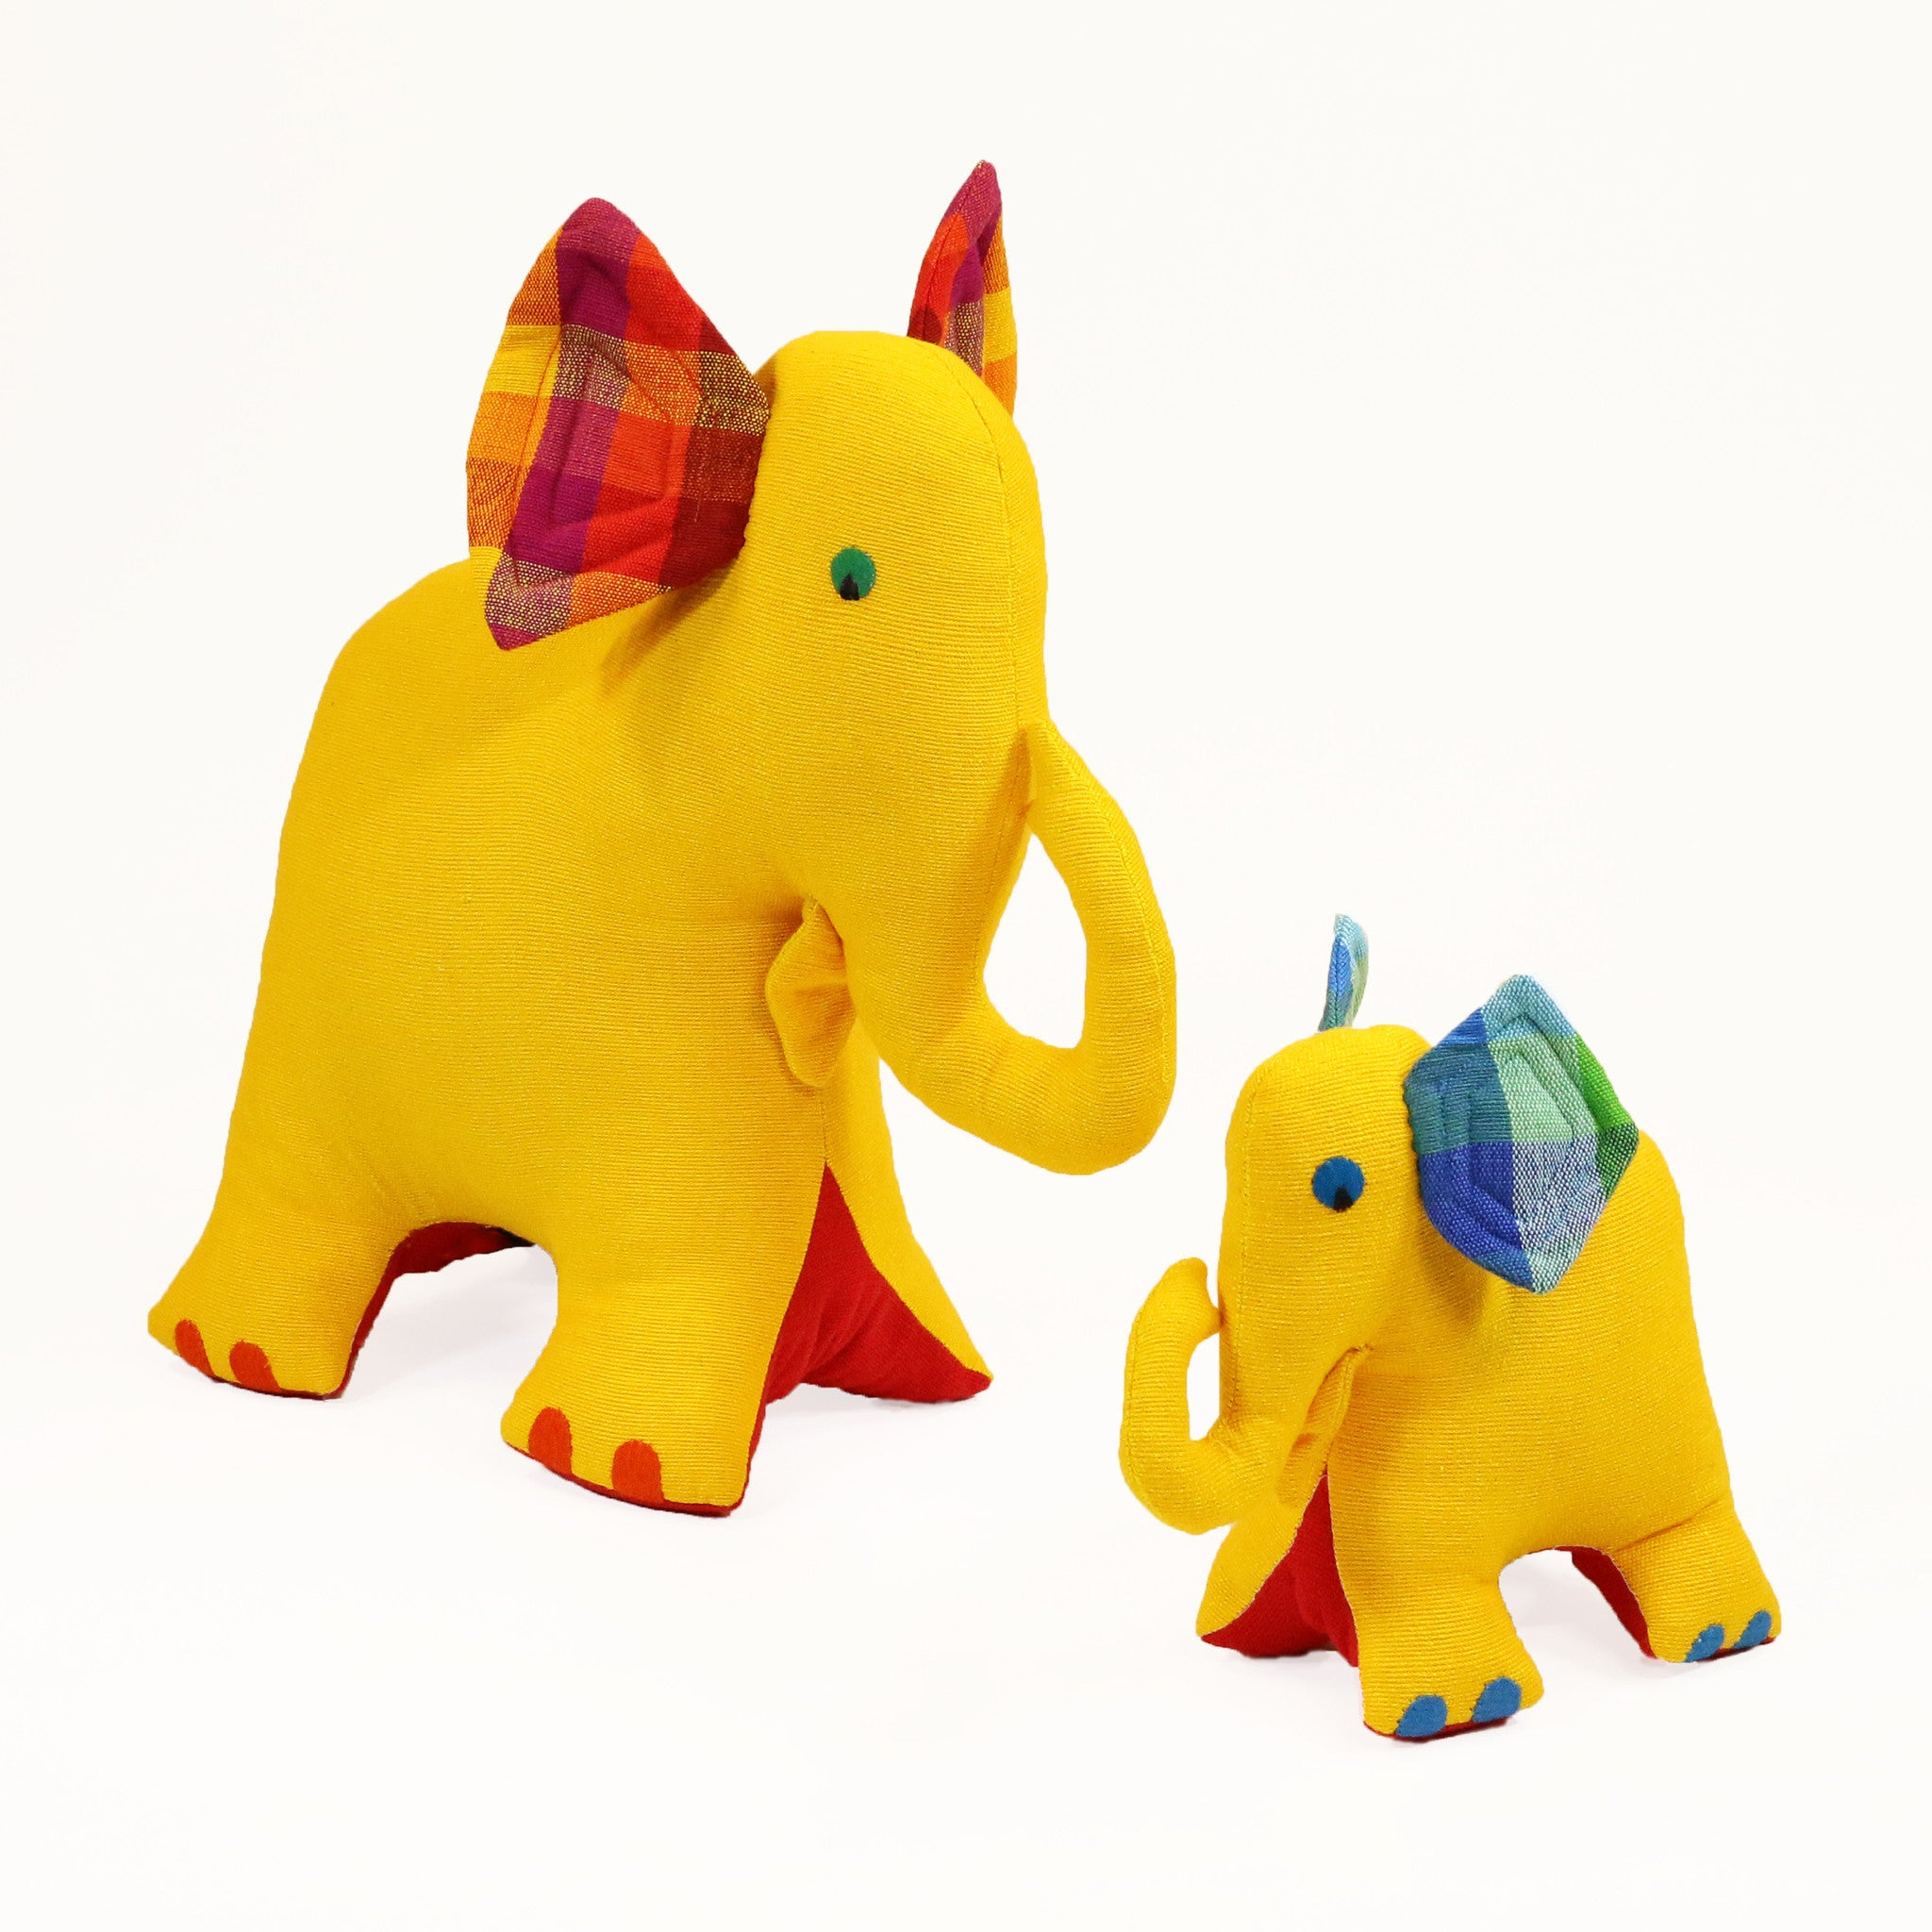 Ellen, the Elephant (small & large sizes)